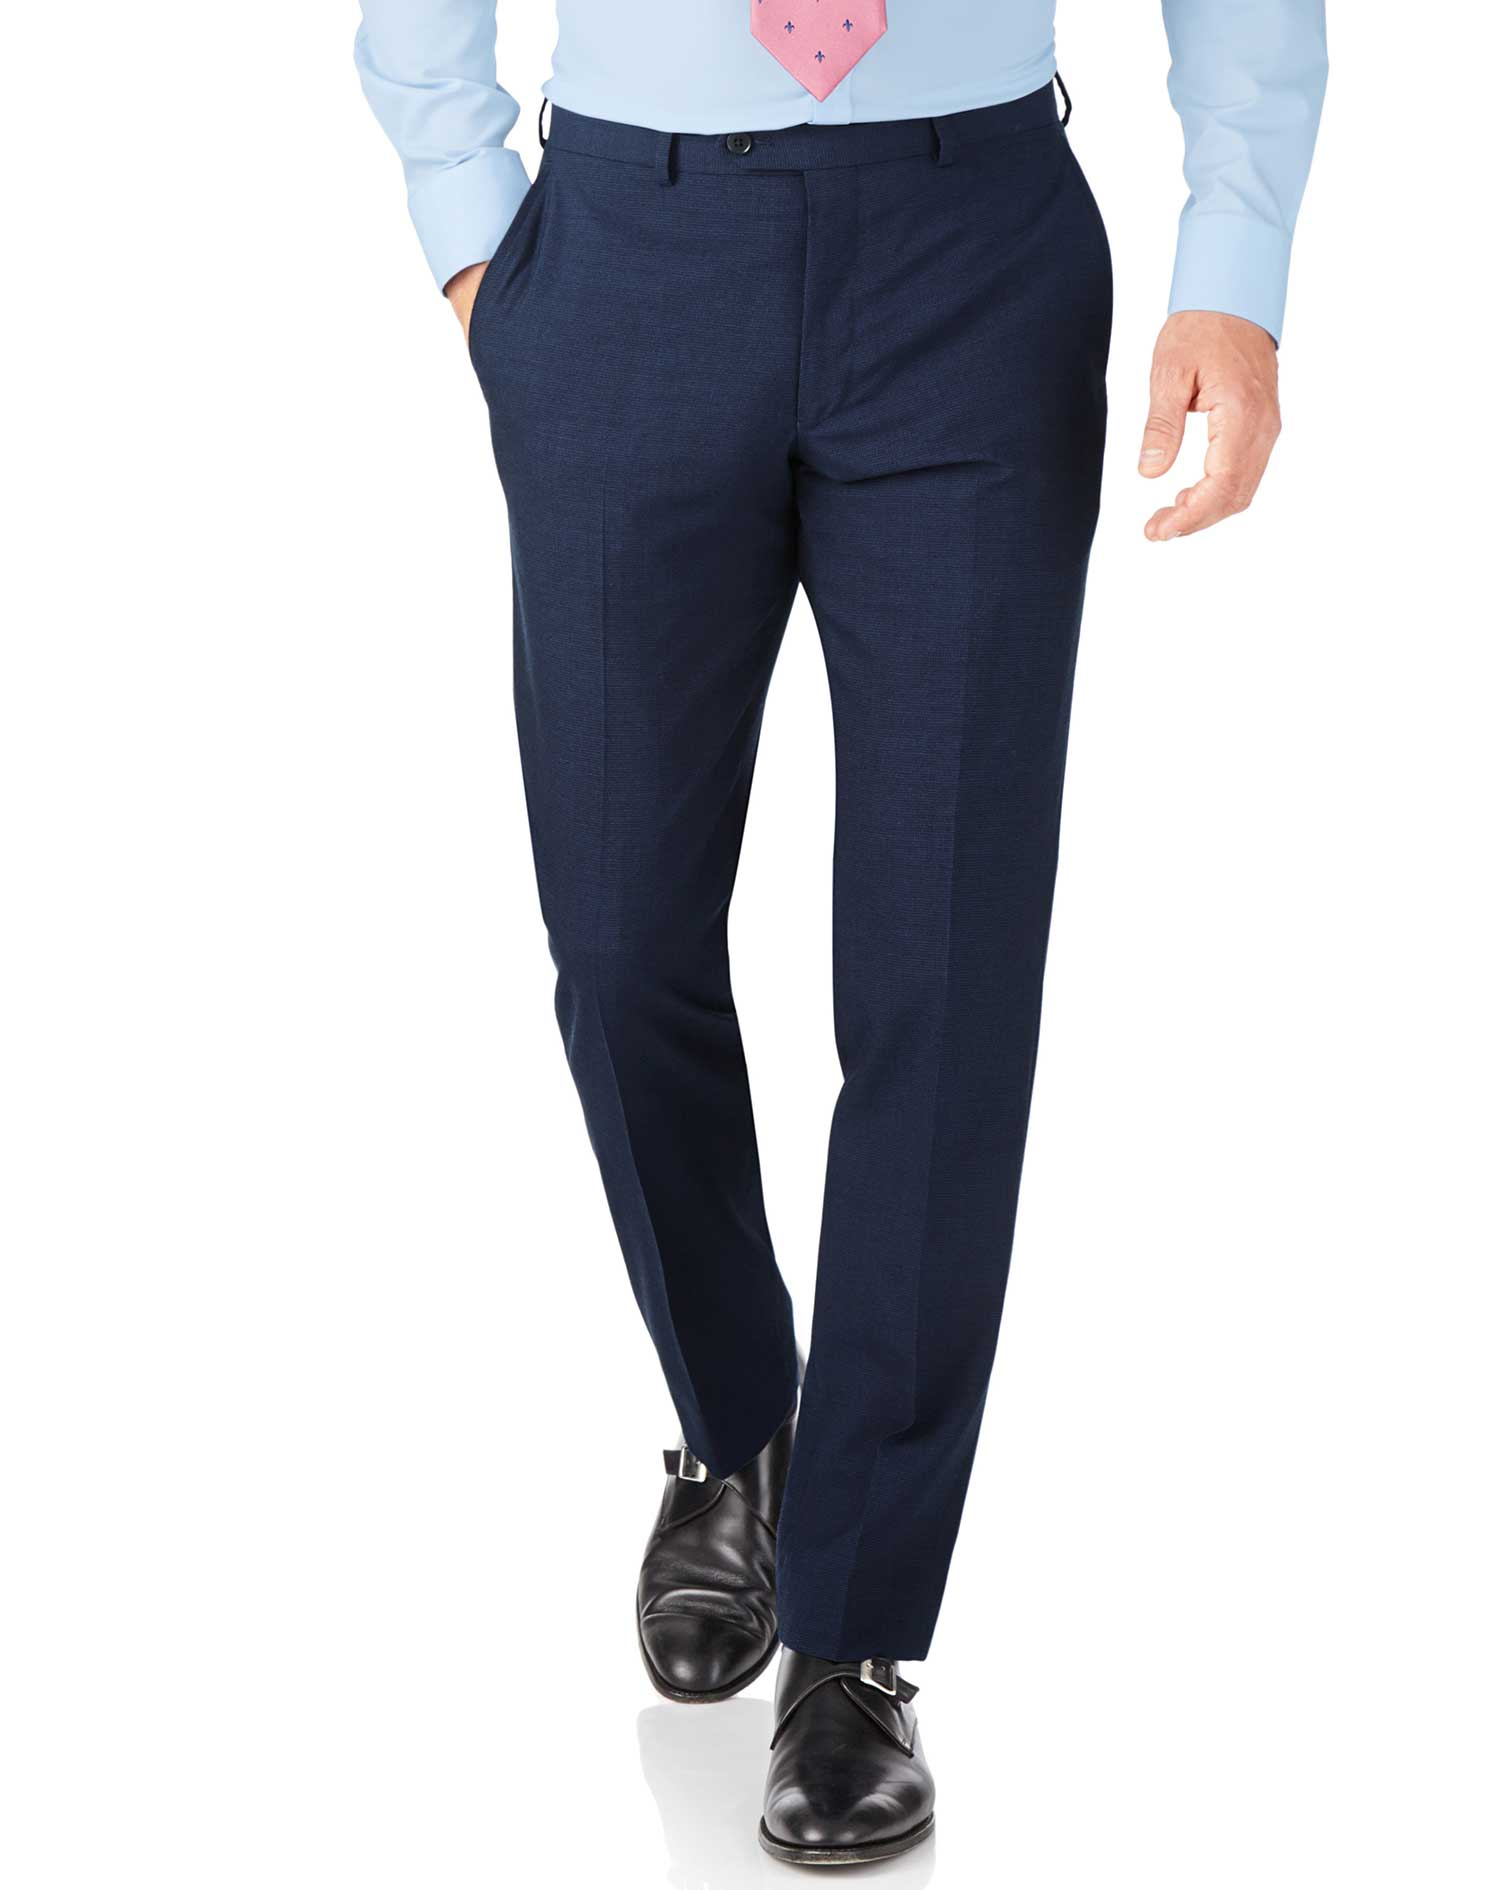 Indigo Blue Puppytooth Slim Fit Panama Business Suit Trouser Size W42 L38 by Charles Tyrwhitt